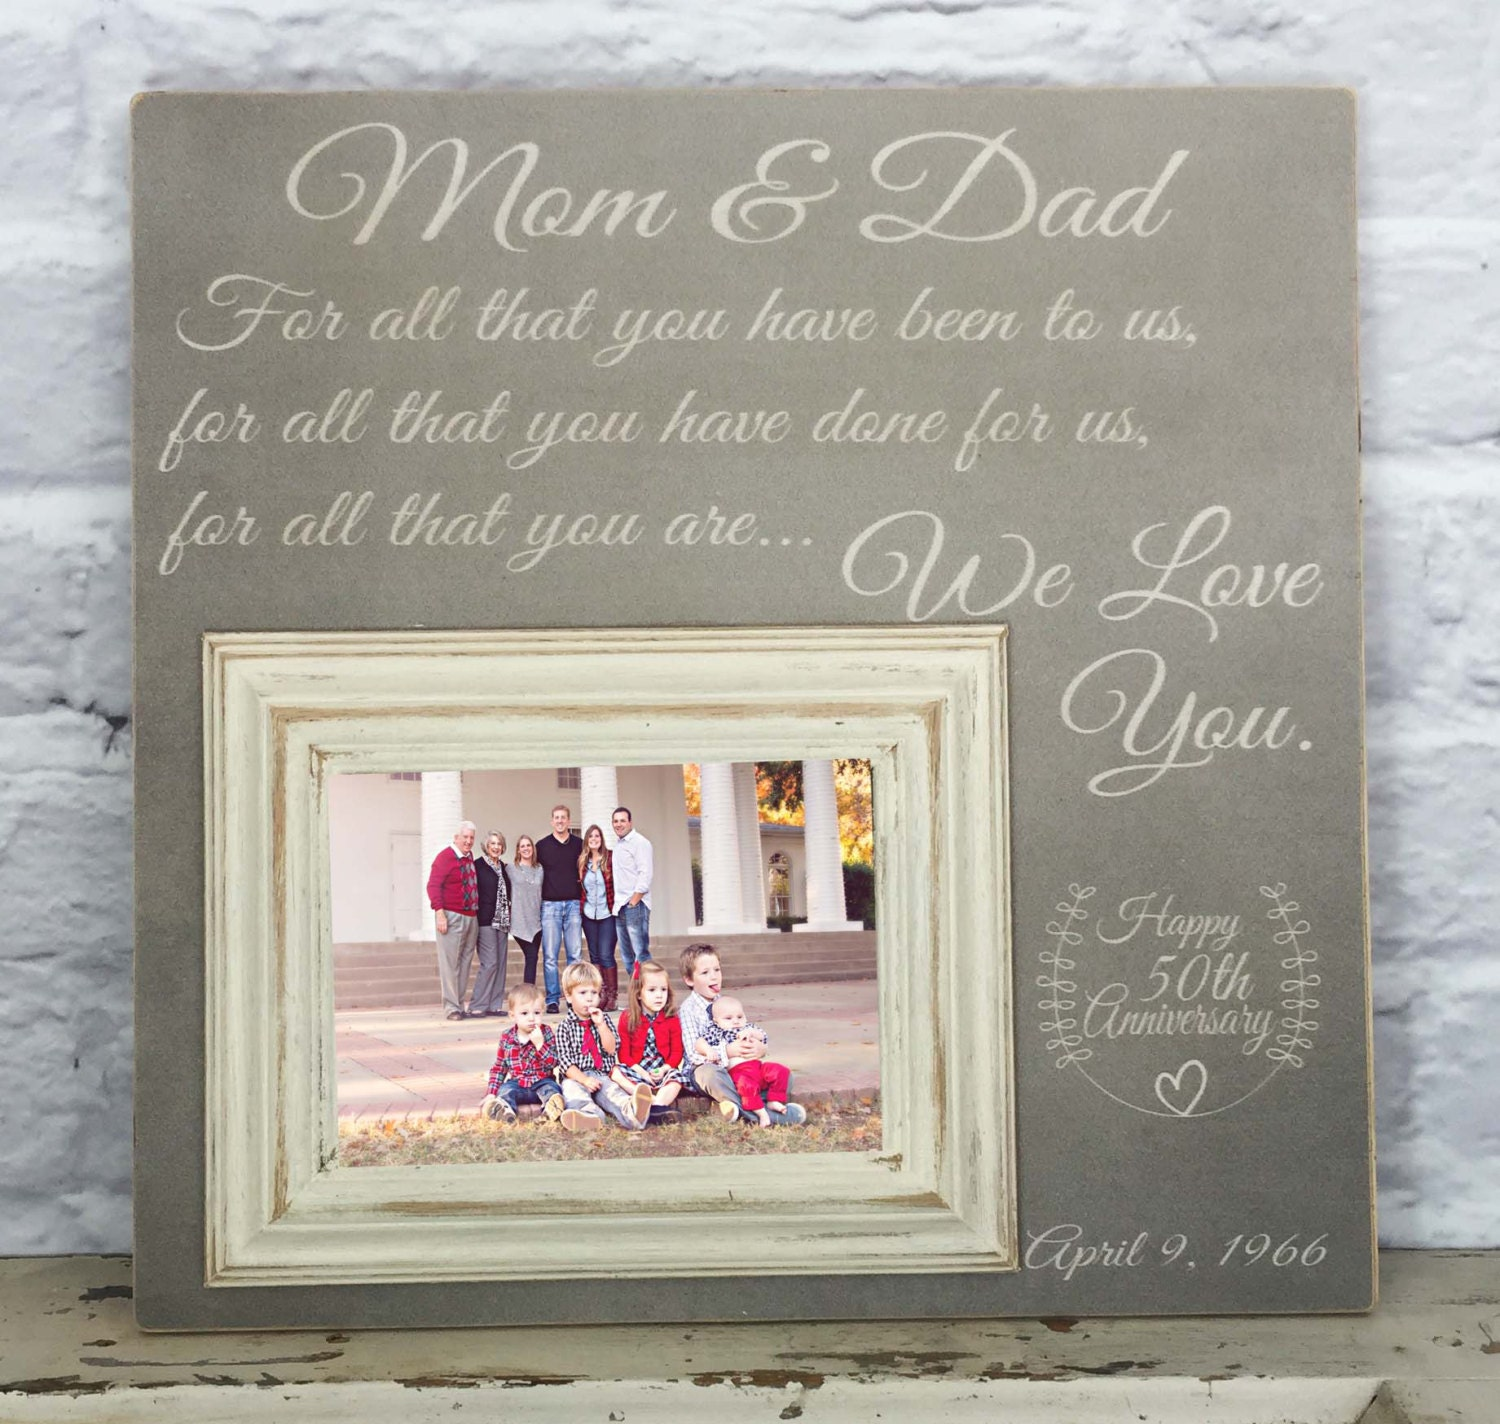 50th anniversary gifts wedding gifts for parents 50th Anniversary Gift Picture Frame 50th Wedding For All That You Have Been To Us Gifts for Parents Parents Anniversary Gift Frame